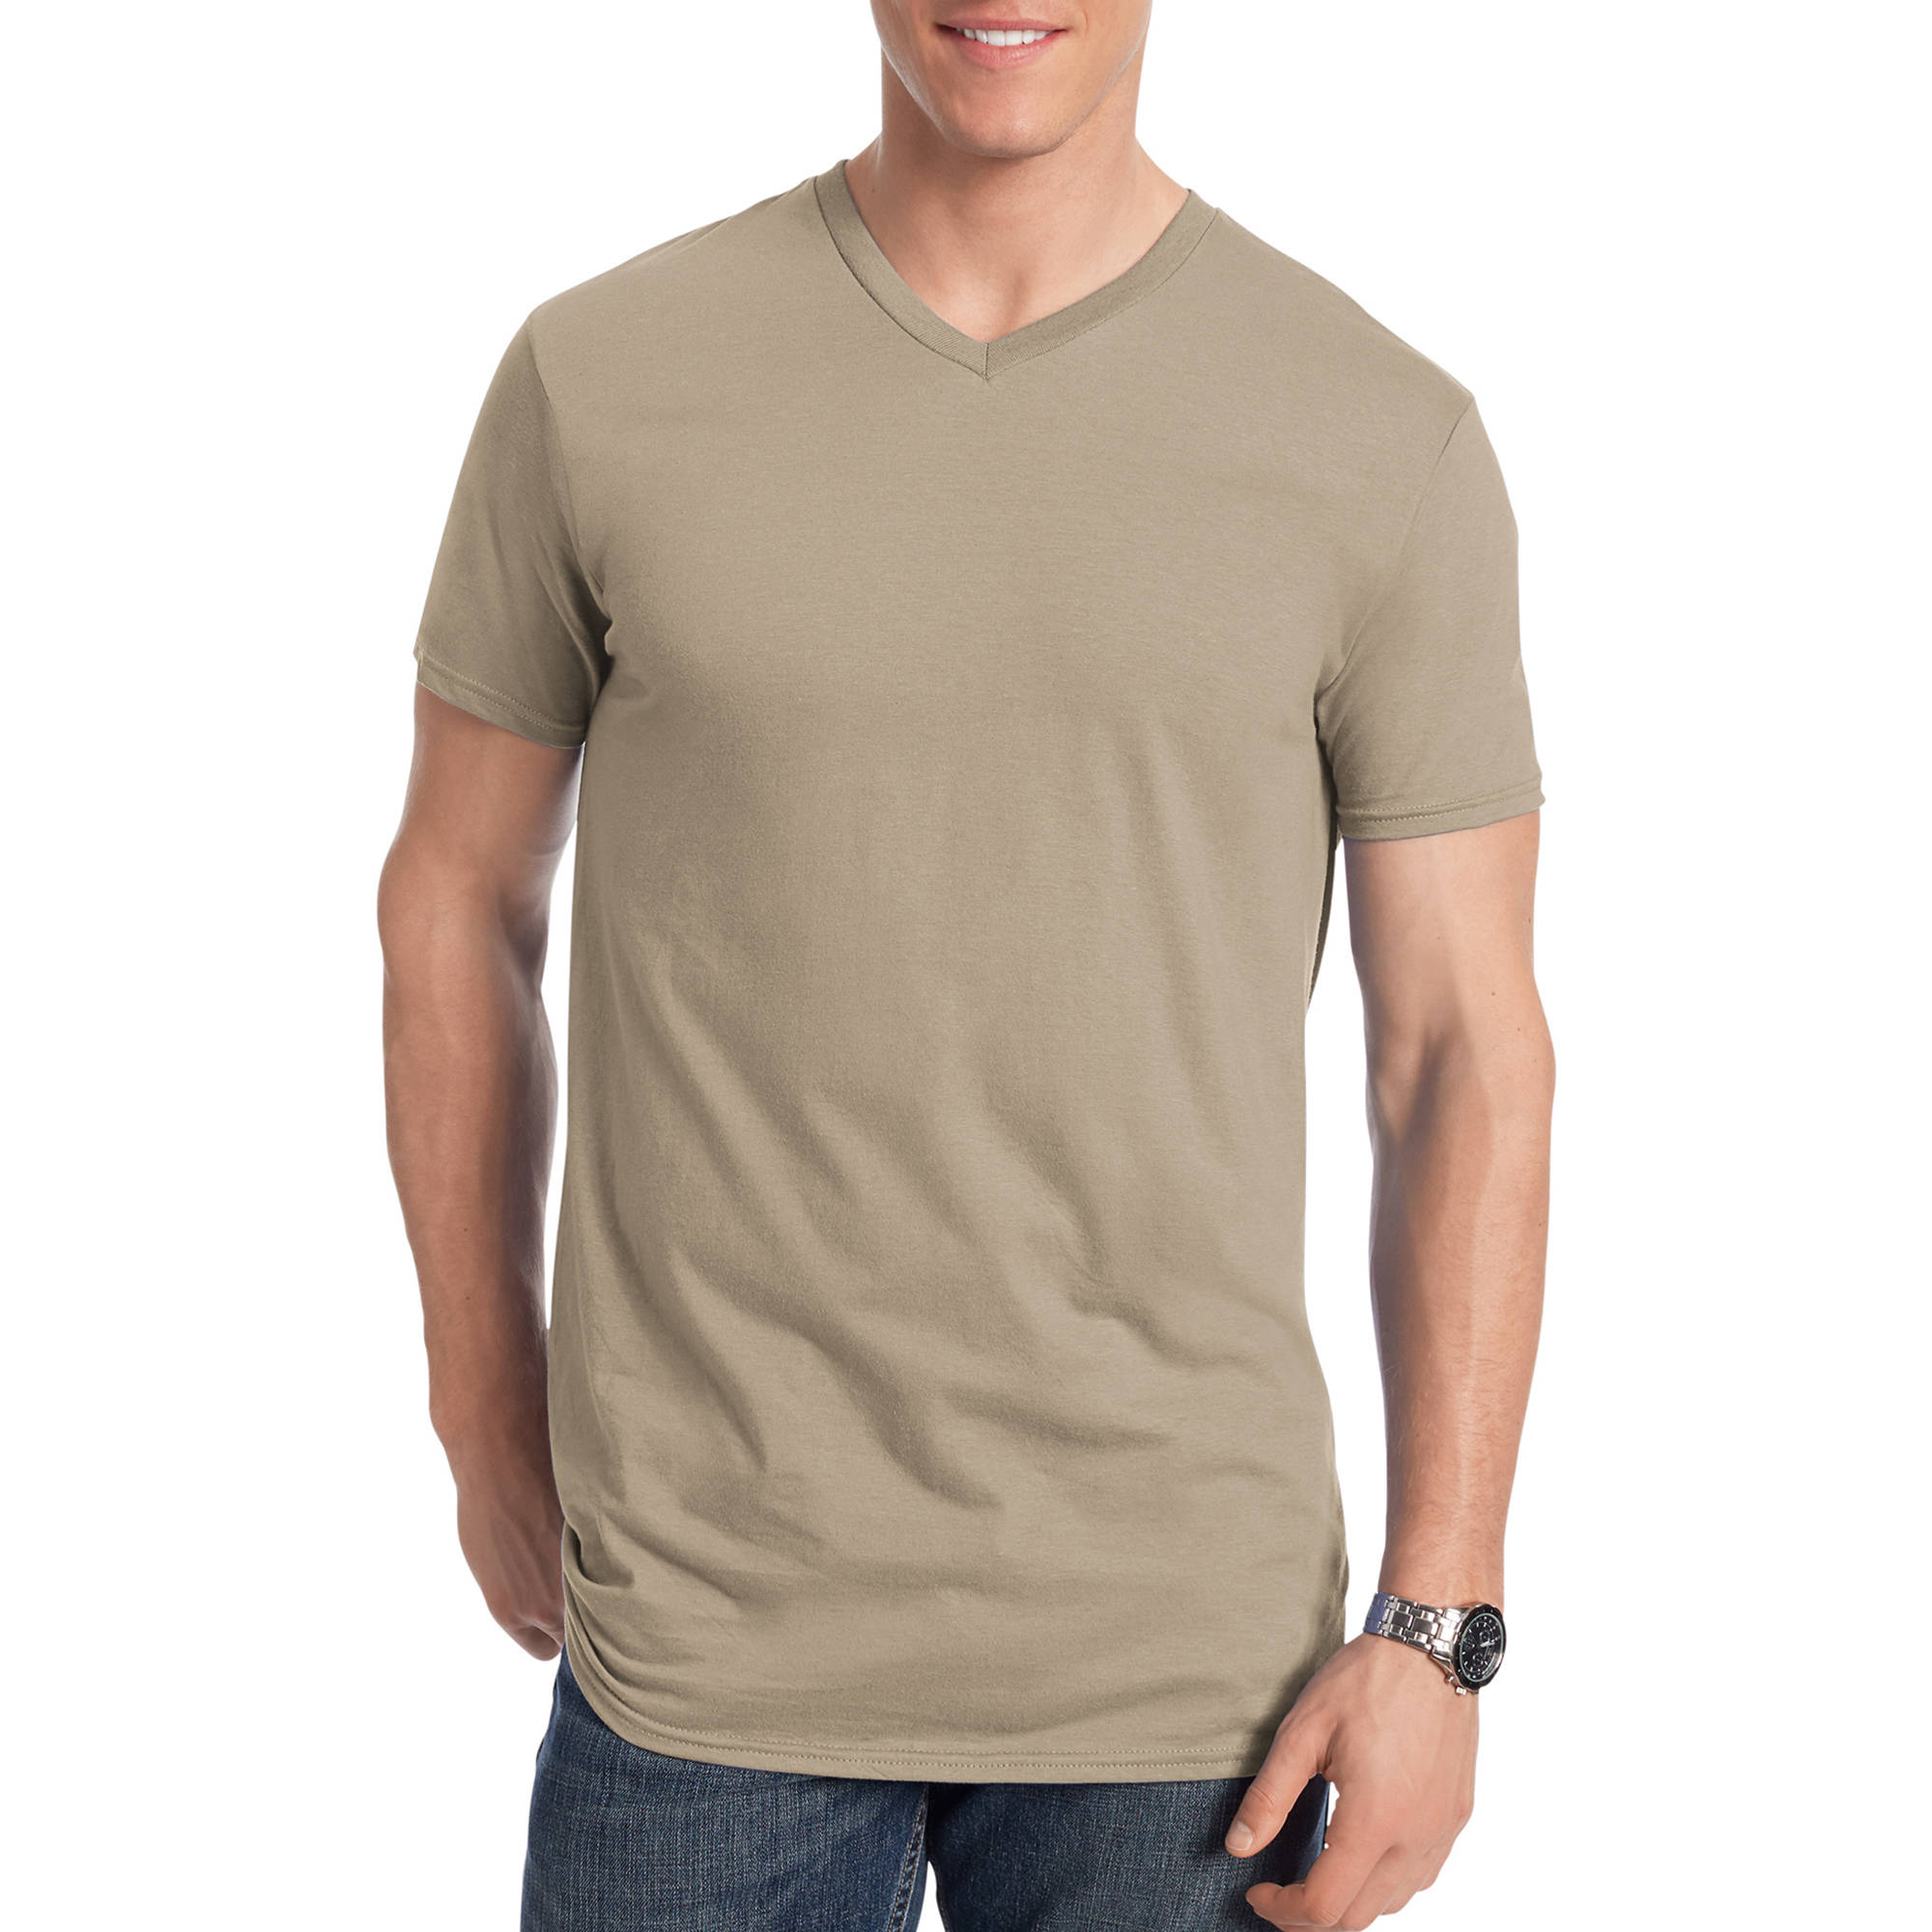 Hanes Men's Nano-T Short Sleeve V-neck